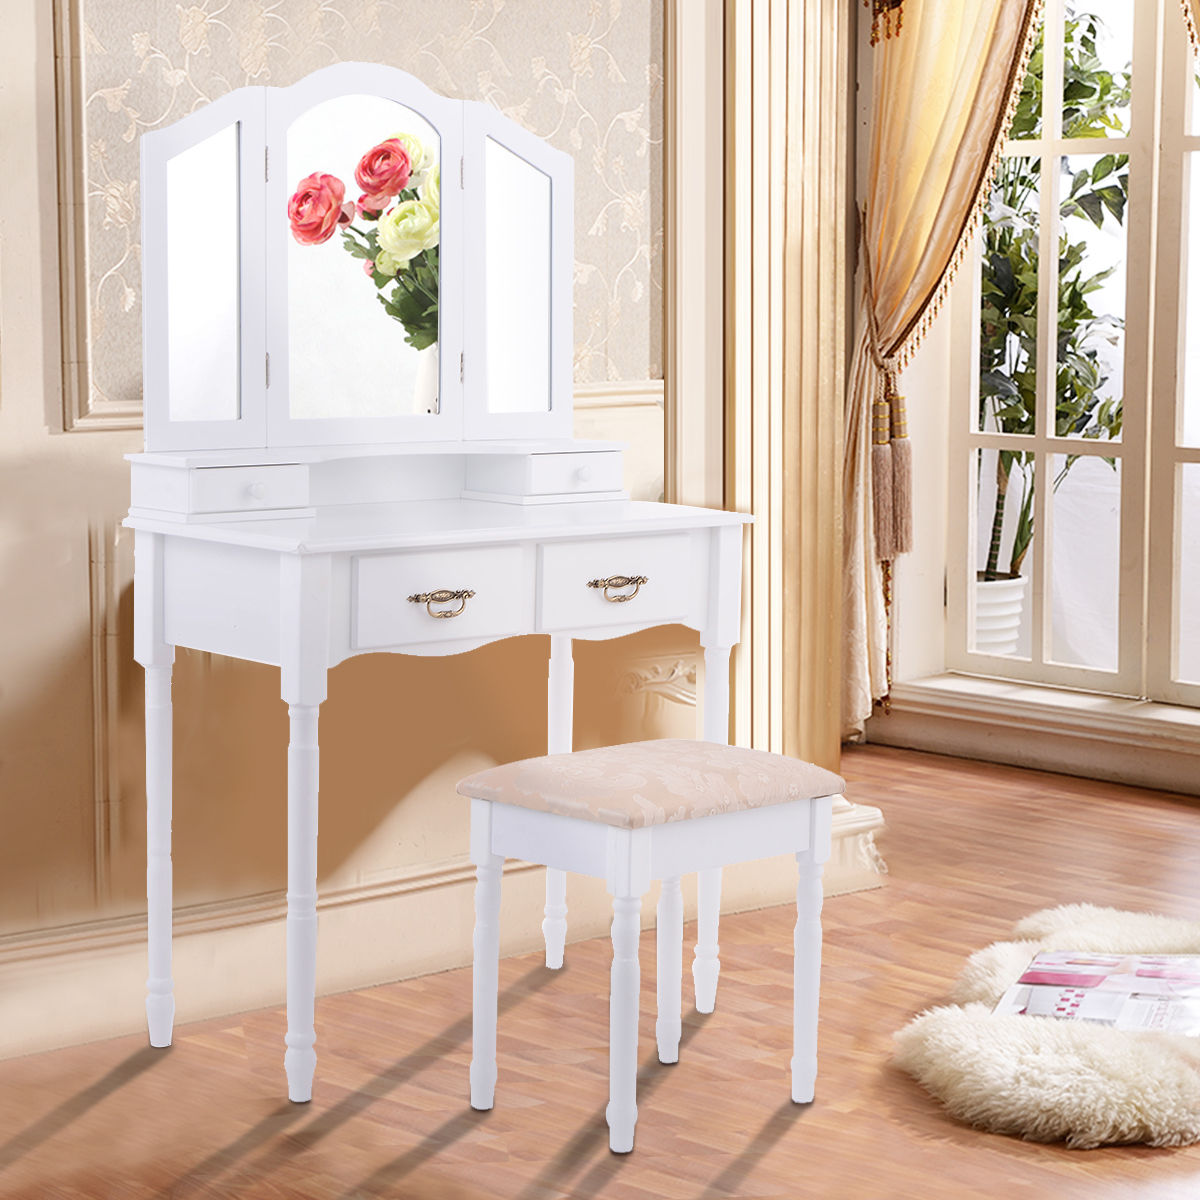 Giantex White Tri Folding Mirror Vanity Table Stool Set Modern Makeup Dressing Desk with 4 Drawers Wood Dressers HW54073WH ship from germany makeup dressing table with stool 7 drawers adjustable mirrors bedroom baroque style